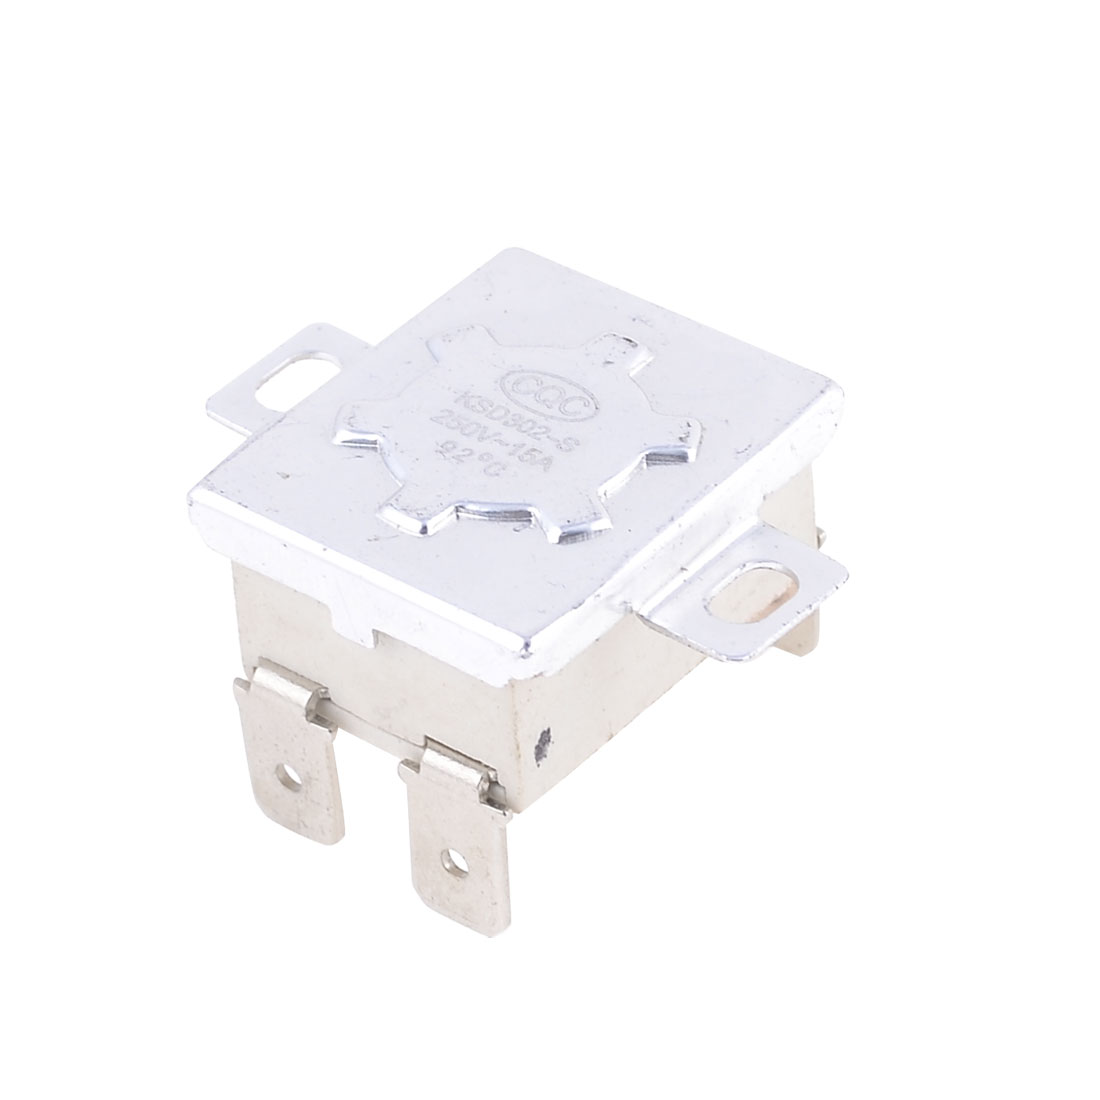 KSD302-S 92 Celsius N.C.Temperature Control Switch Thermostat AC250V 15A